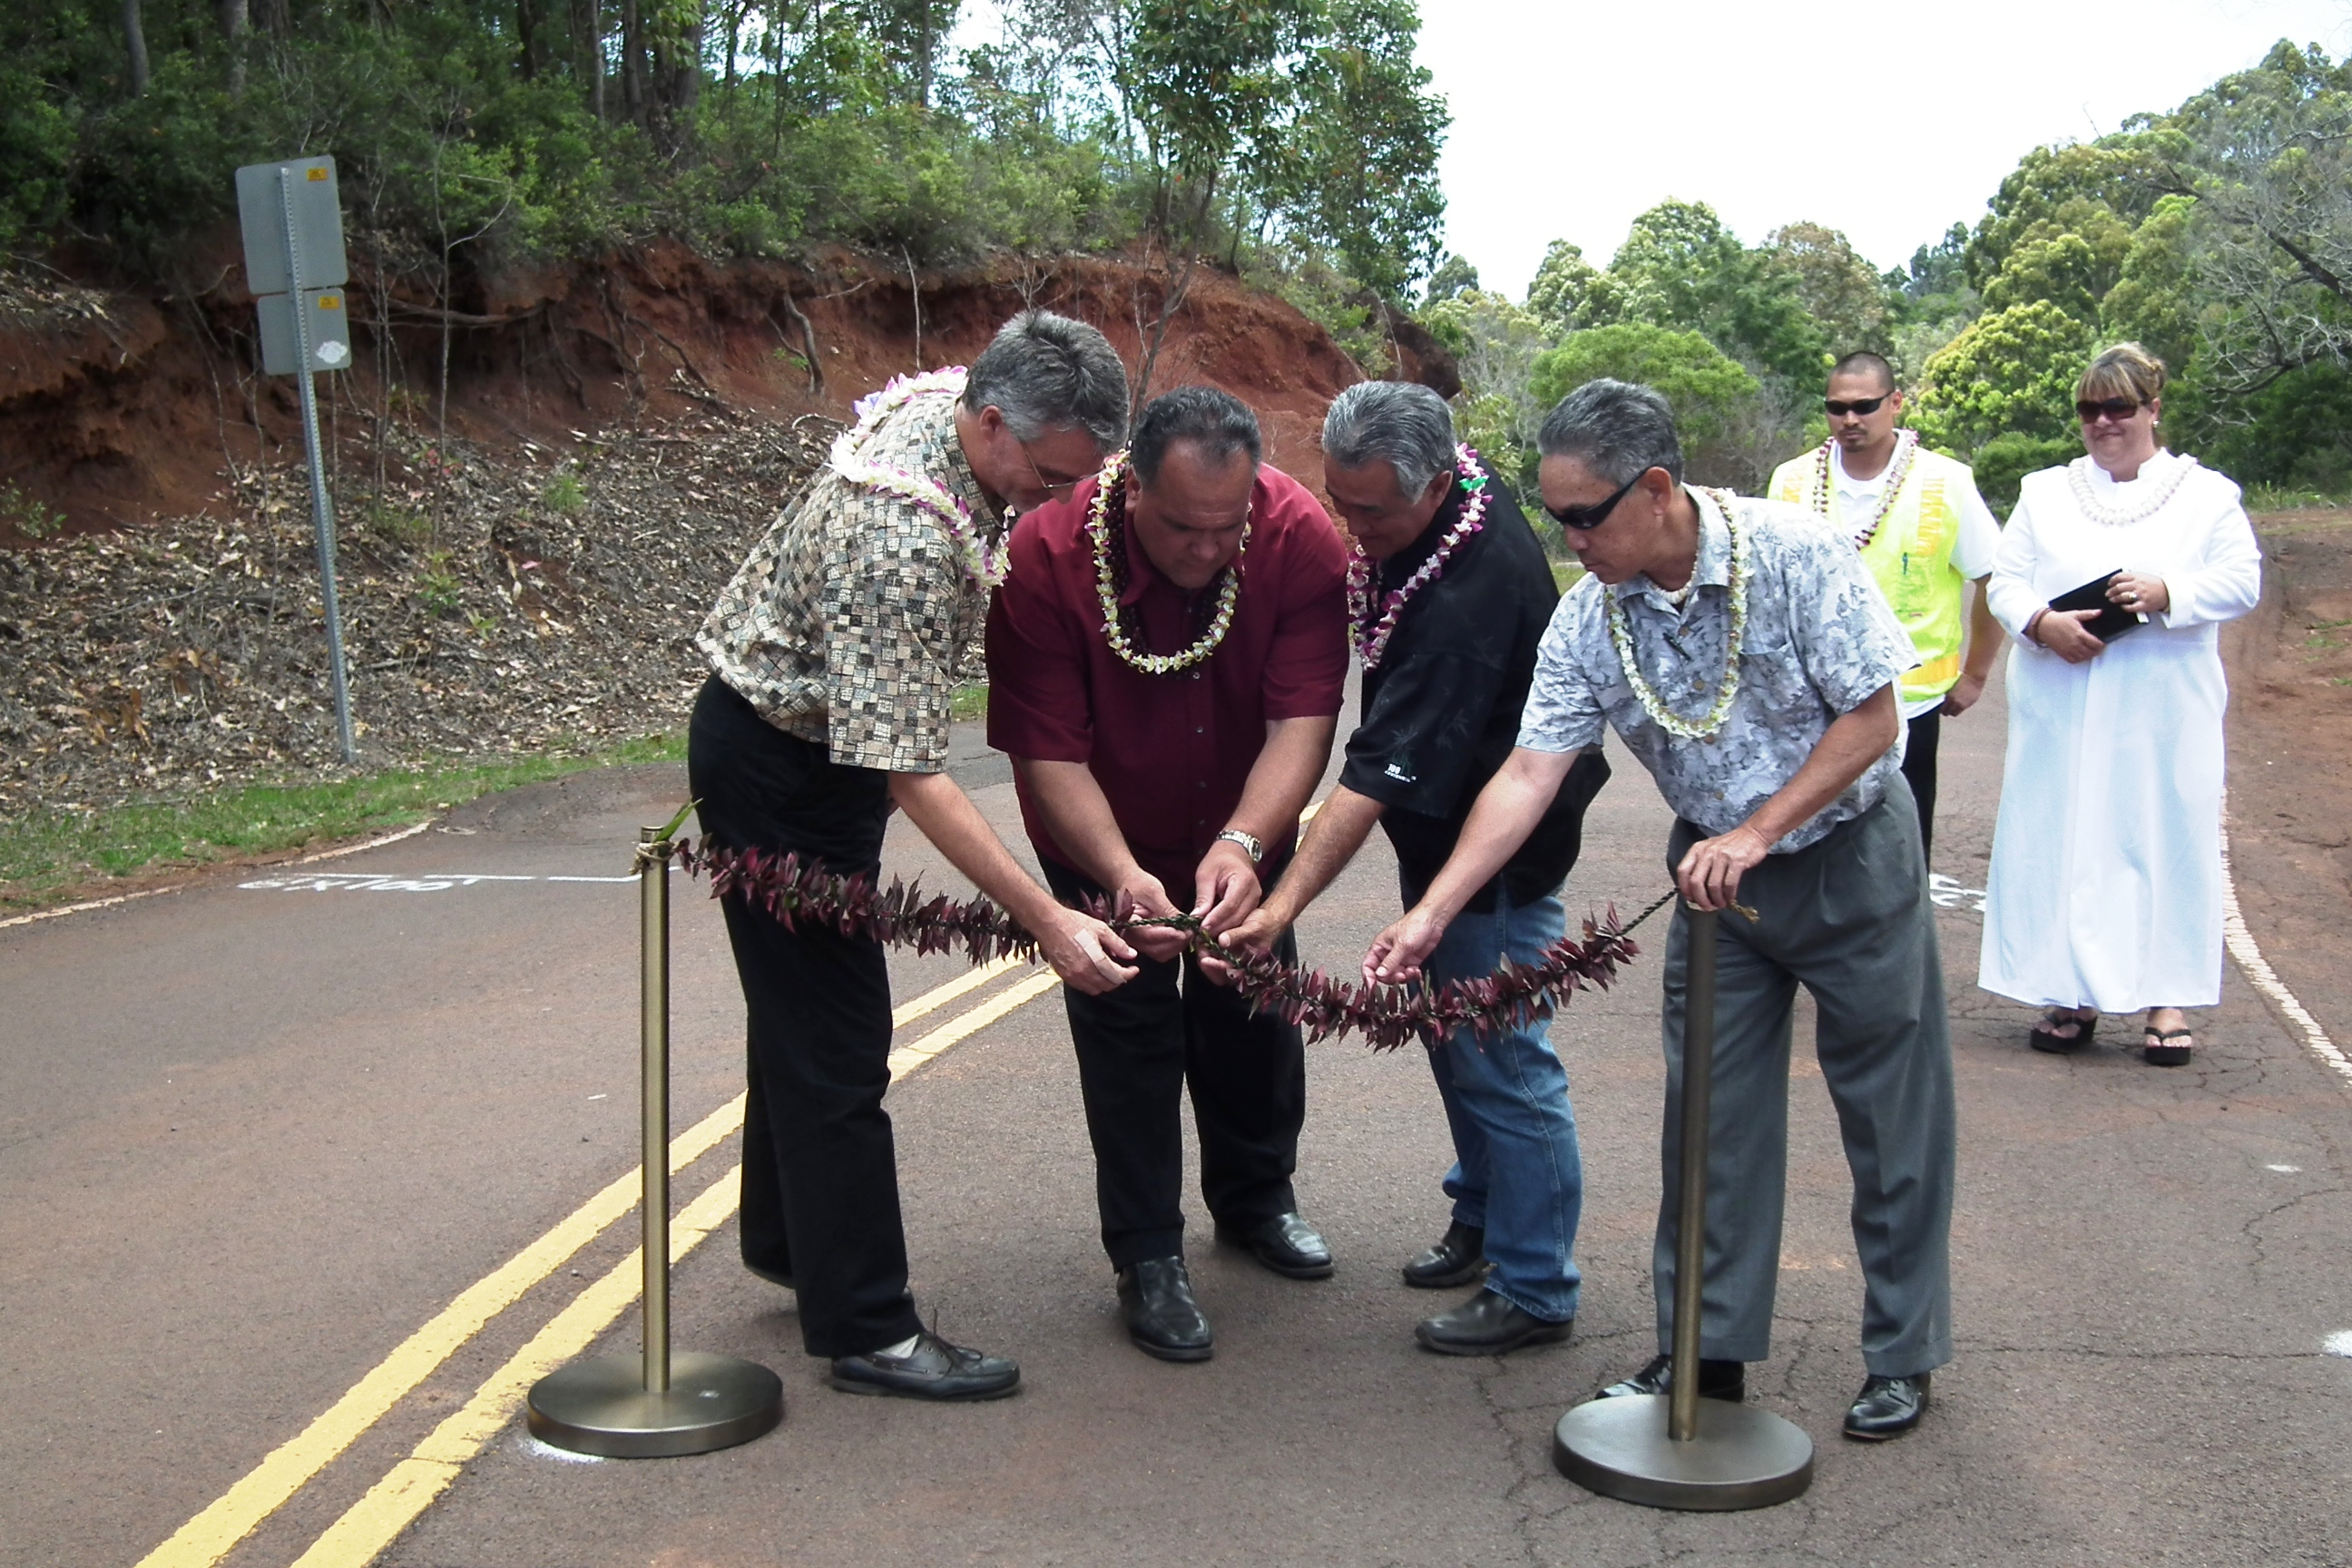 (L To R) County Engineer Larry Dill, Mayor Bernard Carvalho, Jr., Norman Shinno, island manager with Grace Pacific Corp, and County Councilman Dickie Chang untie the traditional lei following a blessing that marked the start of the Kokee Road enhancement project, while project manager Marween Ibanez and Kahu Jade Battad look on.